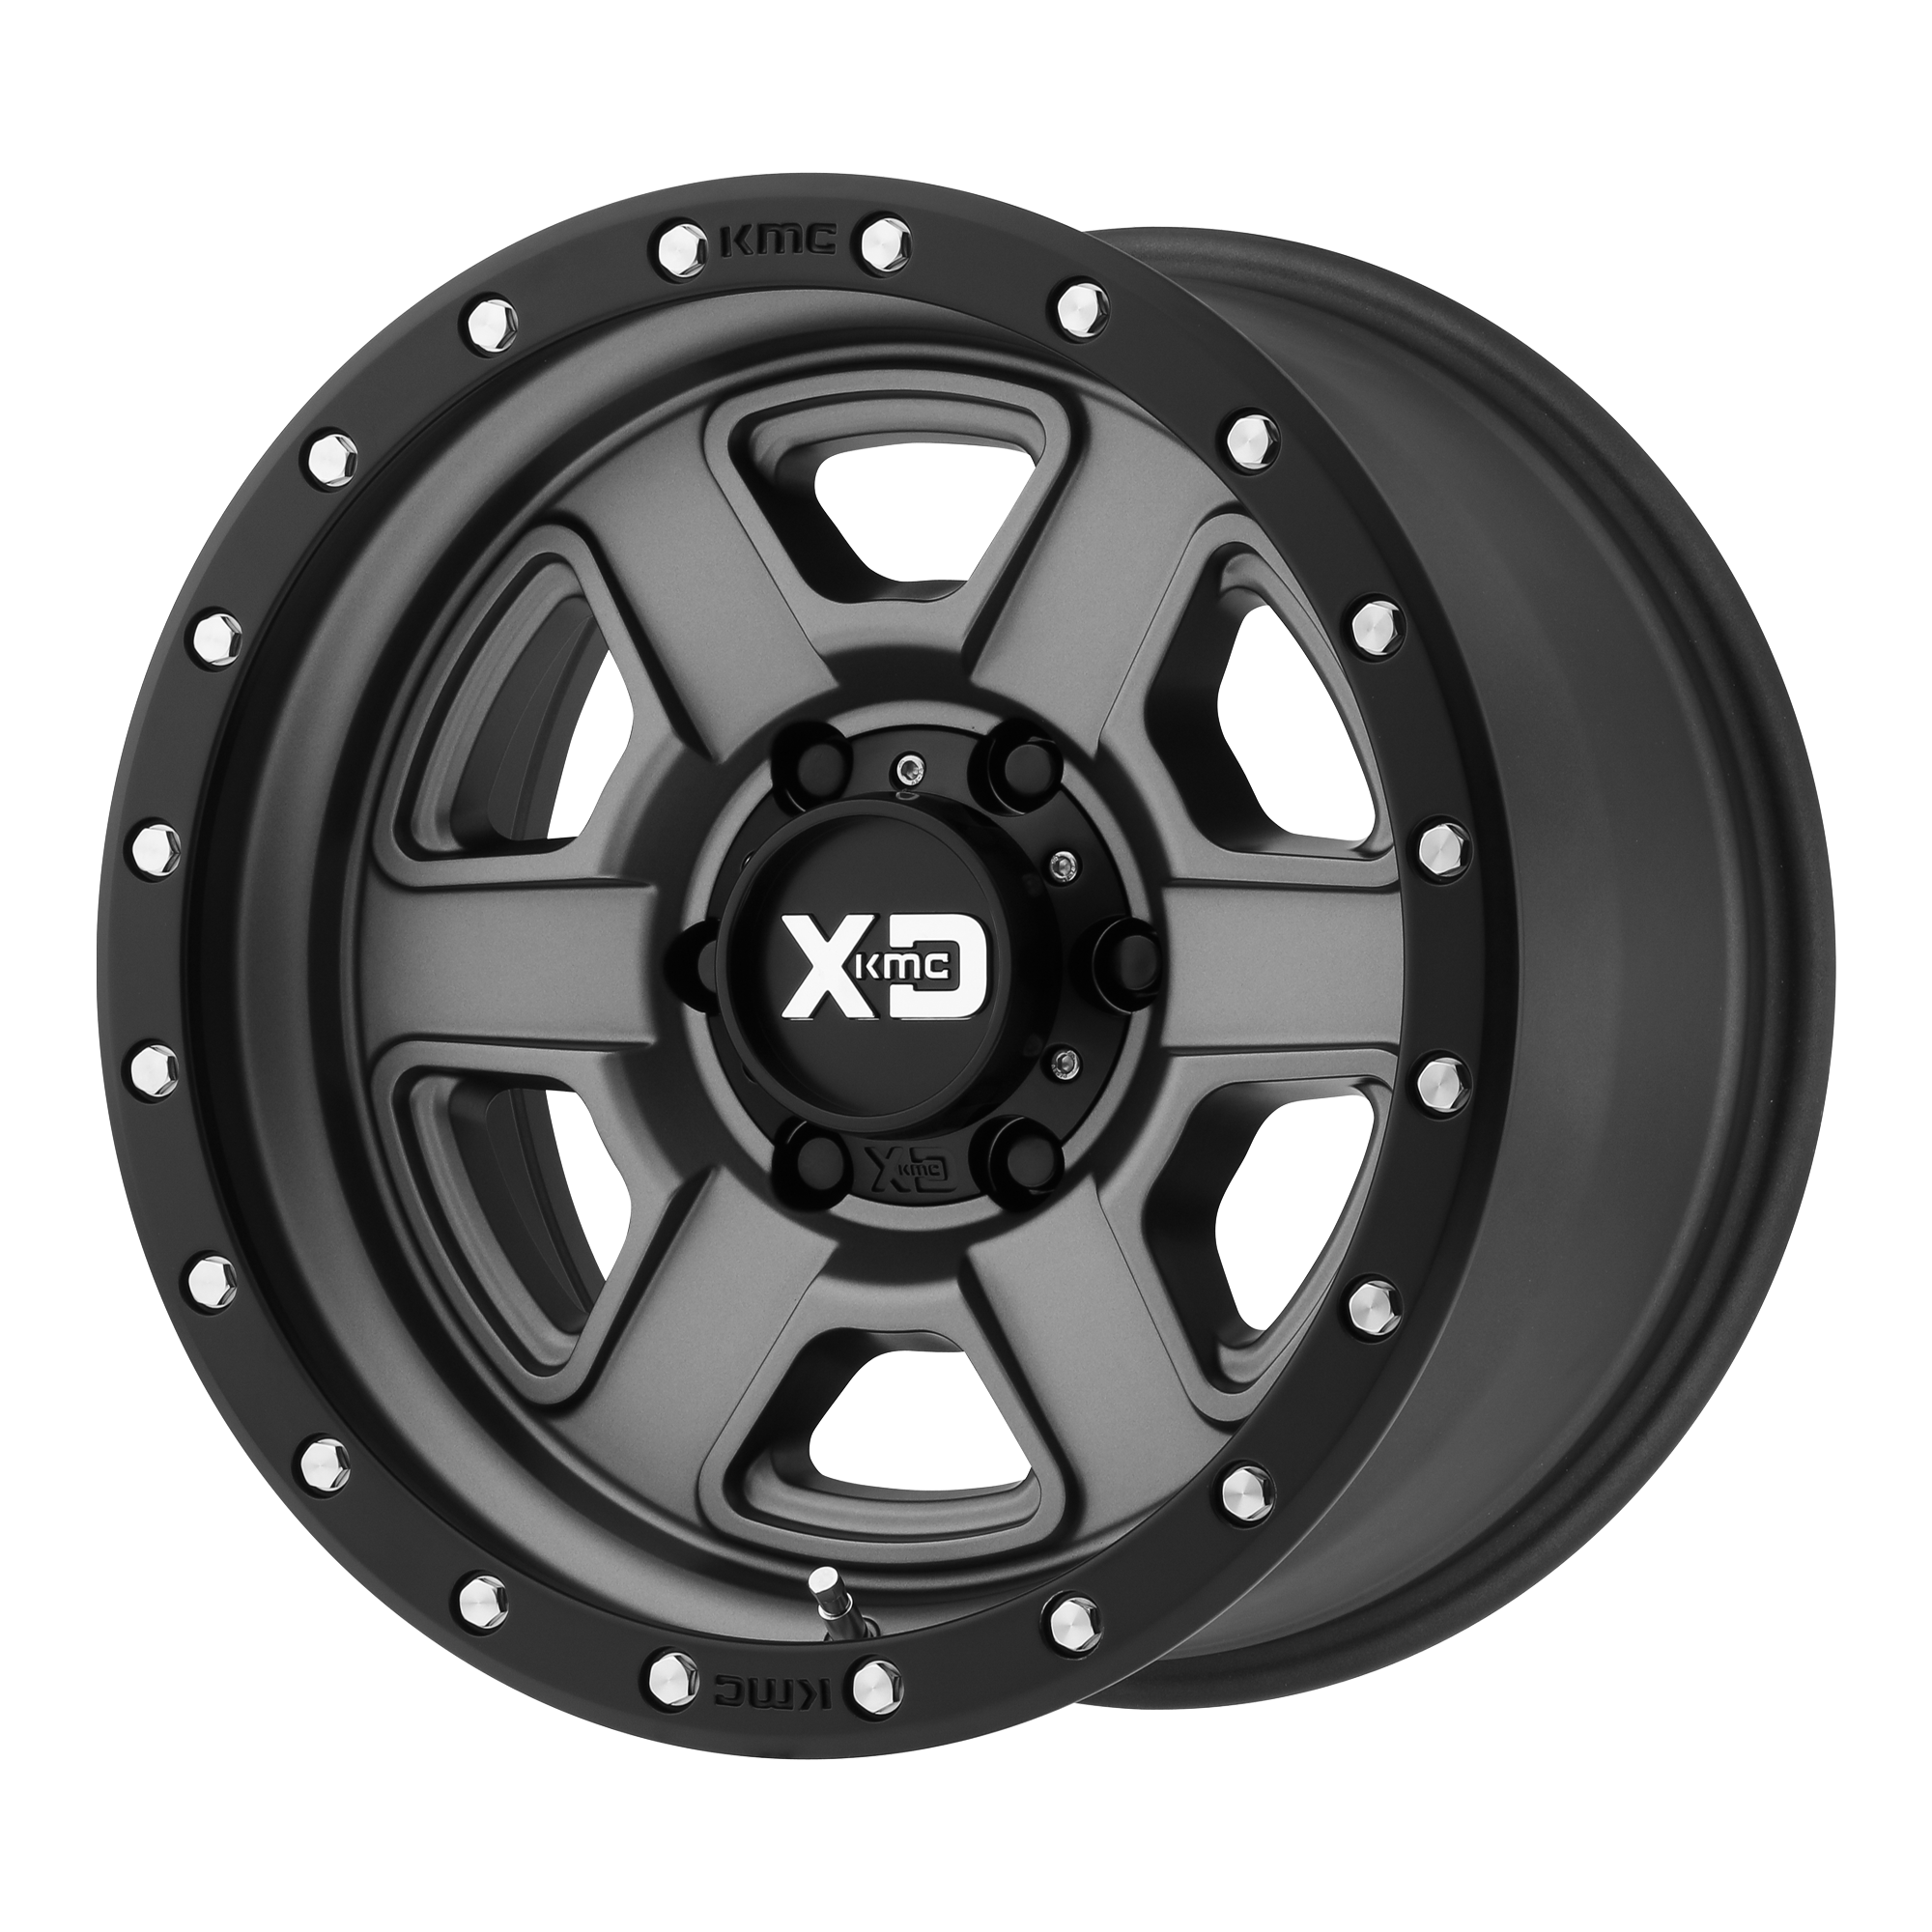 XD SERIES XD133 FUSION OFF-ROAD hliníkové disky 9x18 6x139,7 ET0 Satin Gray With Satin Black Lip